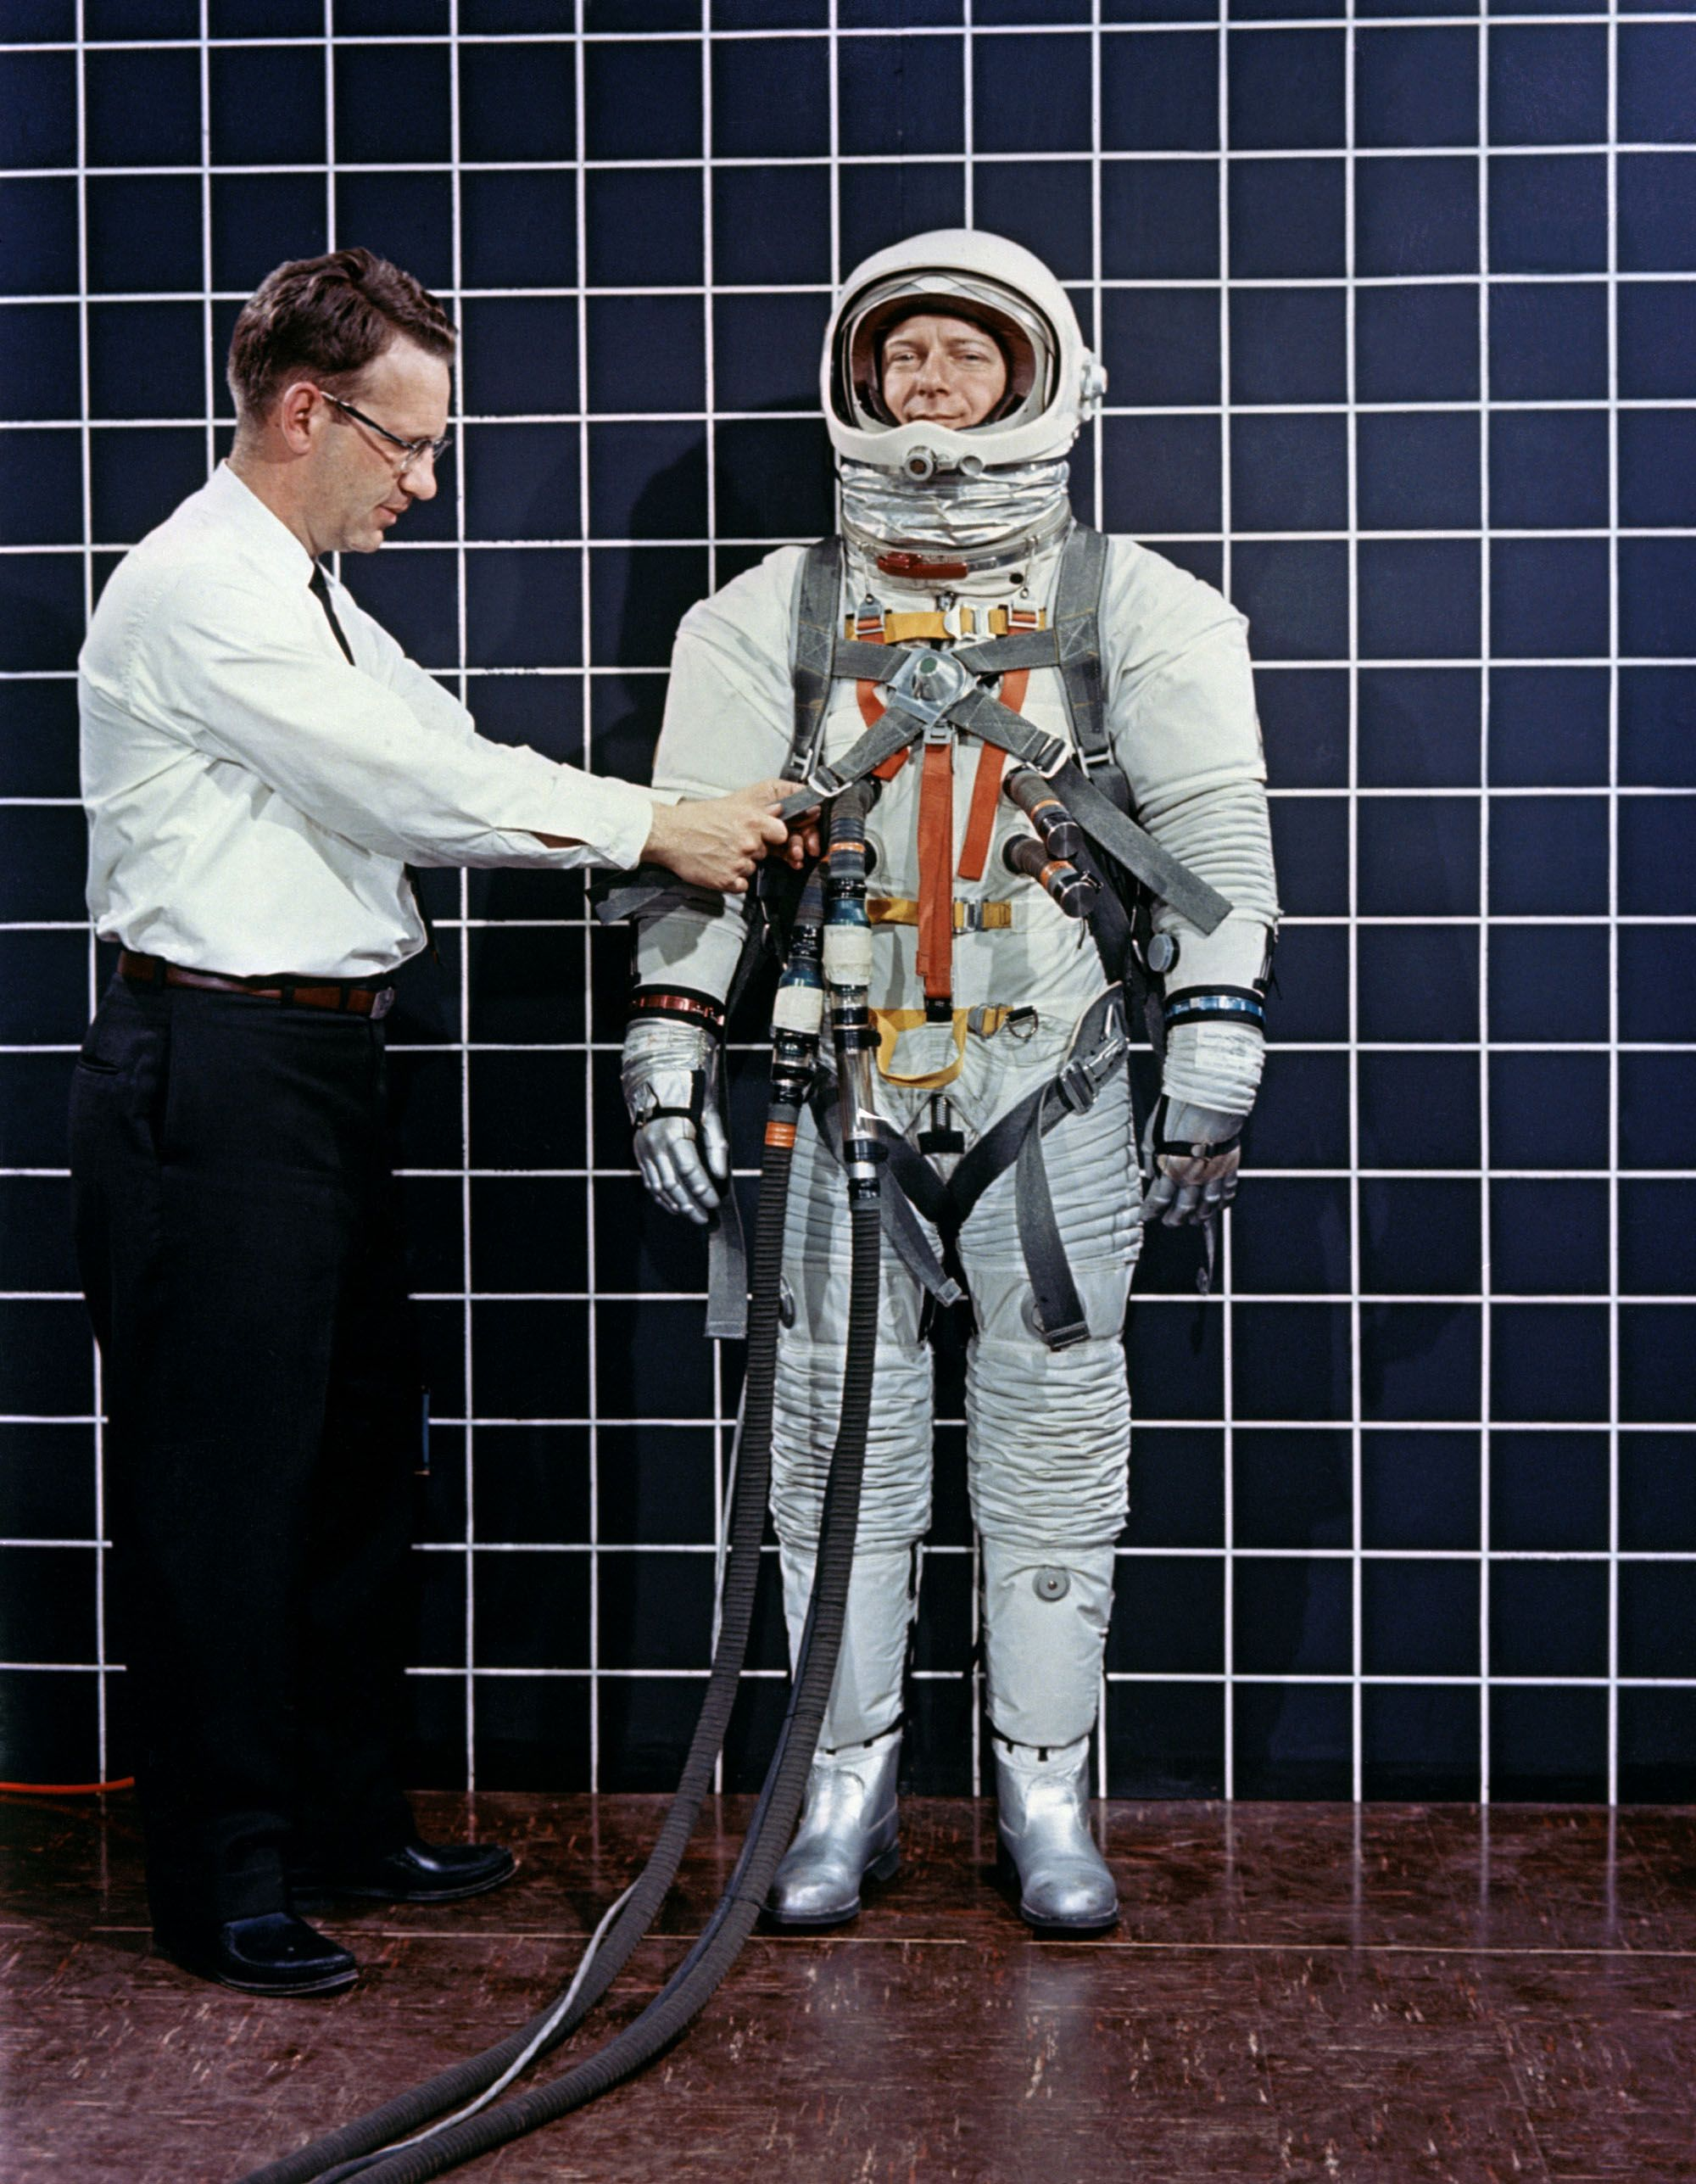 6 Jpg 2000 2575 Apollo Moon Missions Space Suit Space Nasa